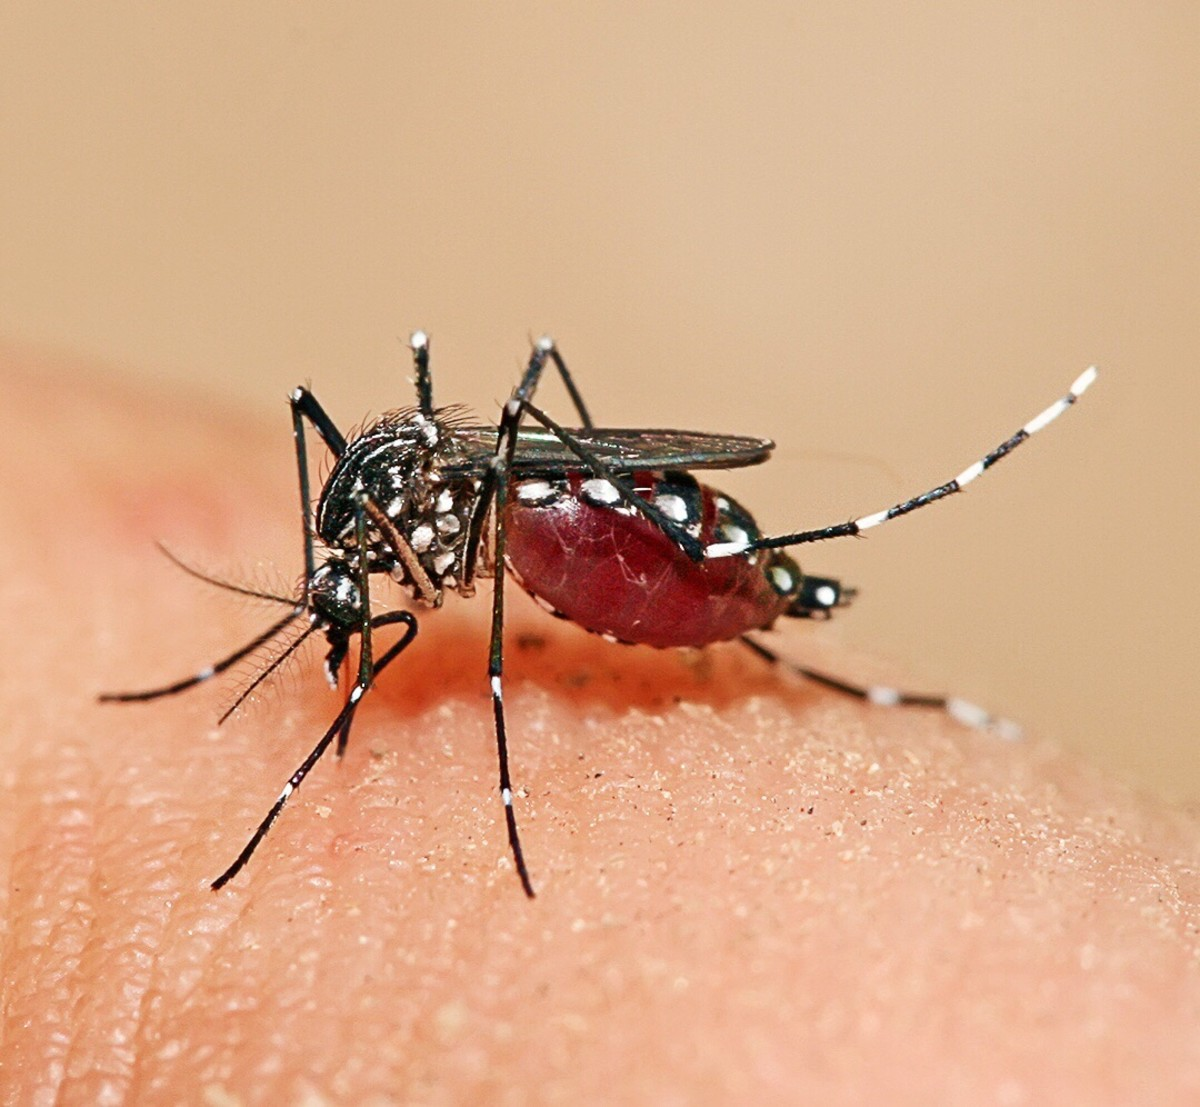 Aedes aegypti feeding on human blood; photo by Muhammad Mahdi Karim